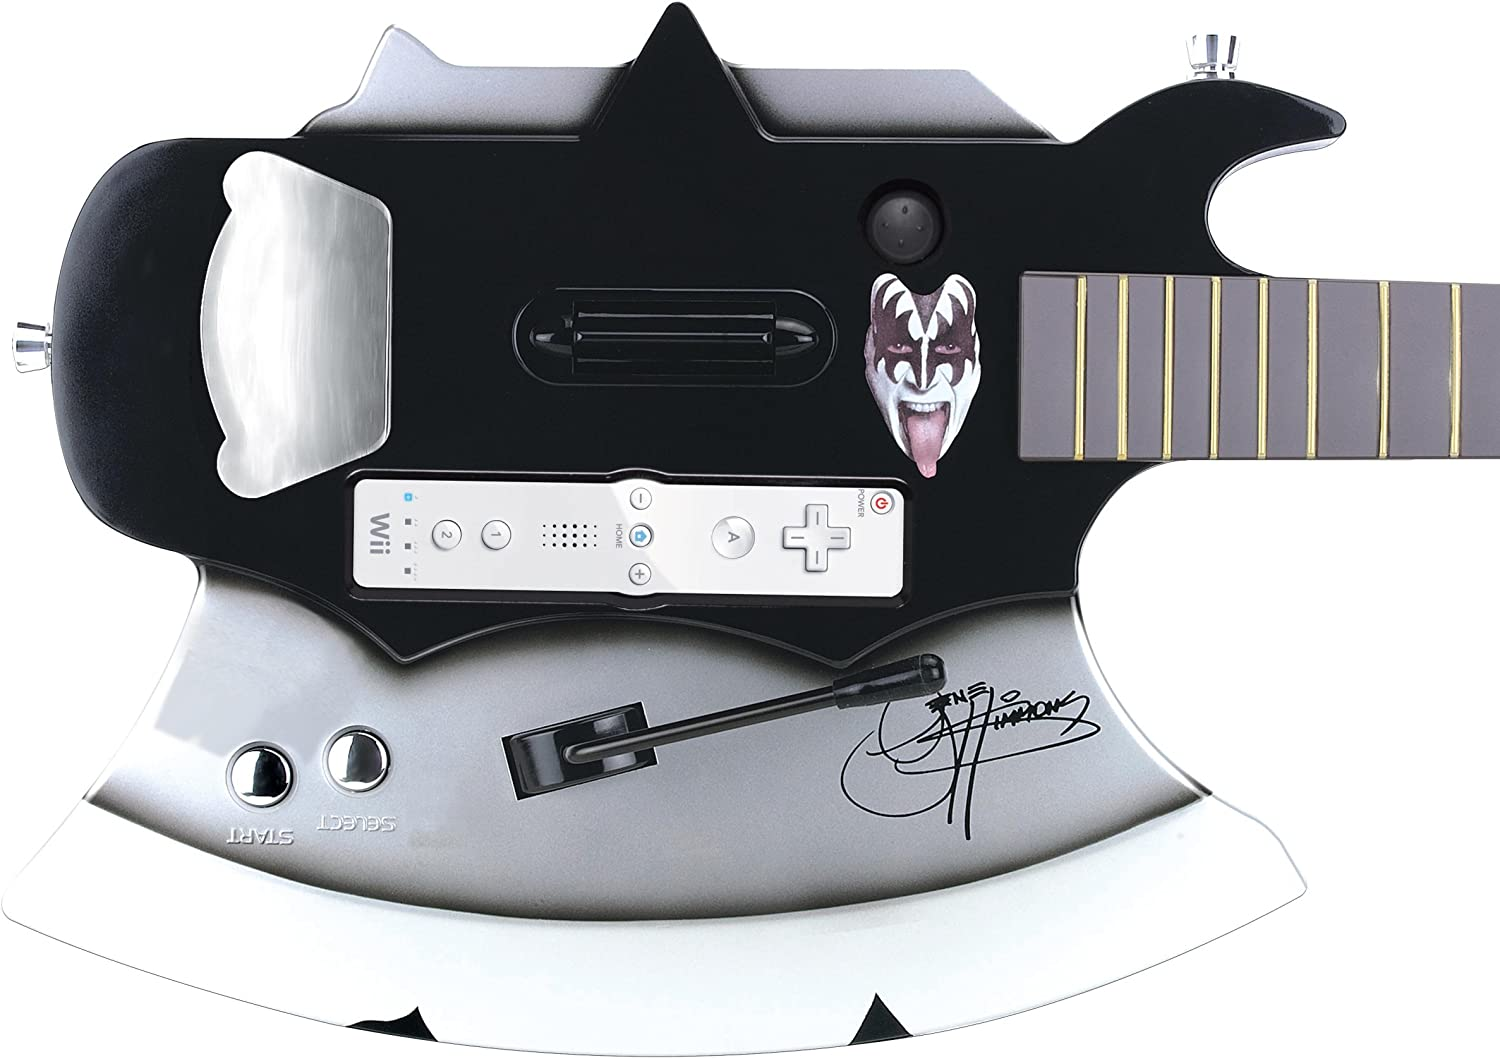 Amazon.com: Gene Simmons Axe Guitar - Playstation 2/Playstation 3 ...